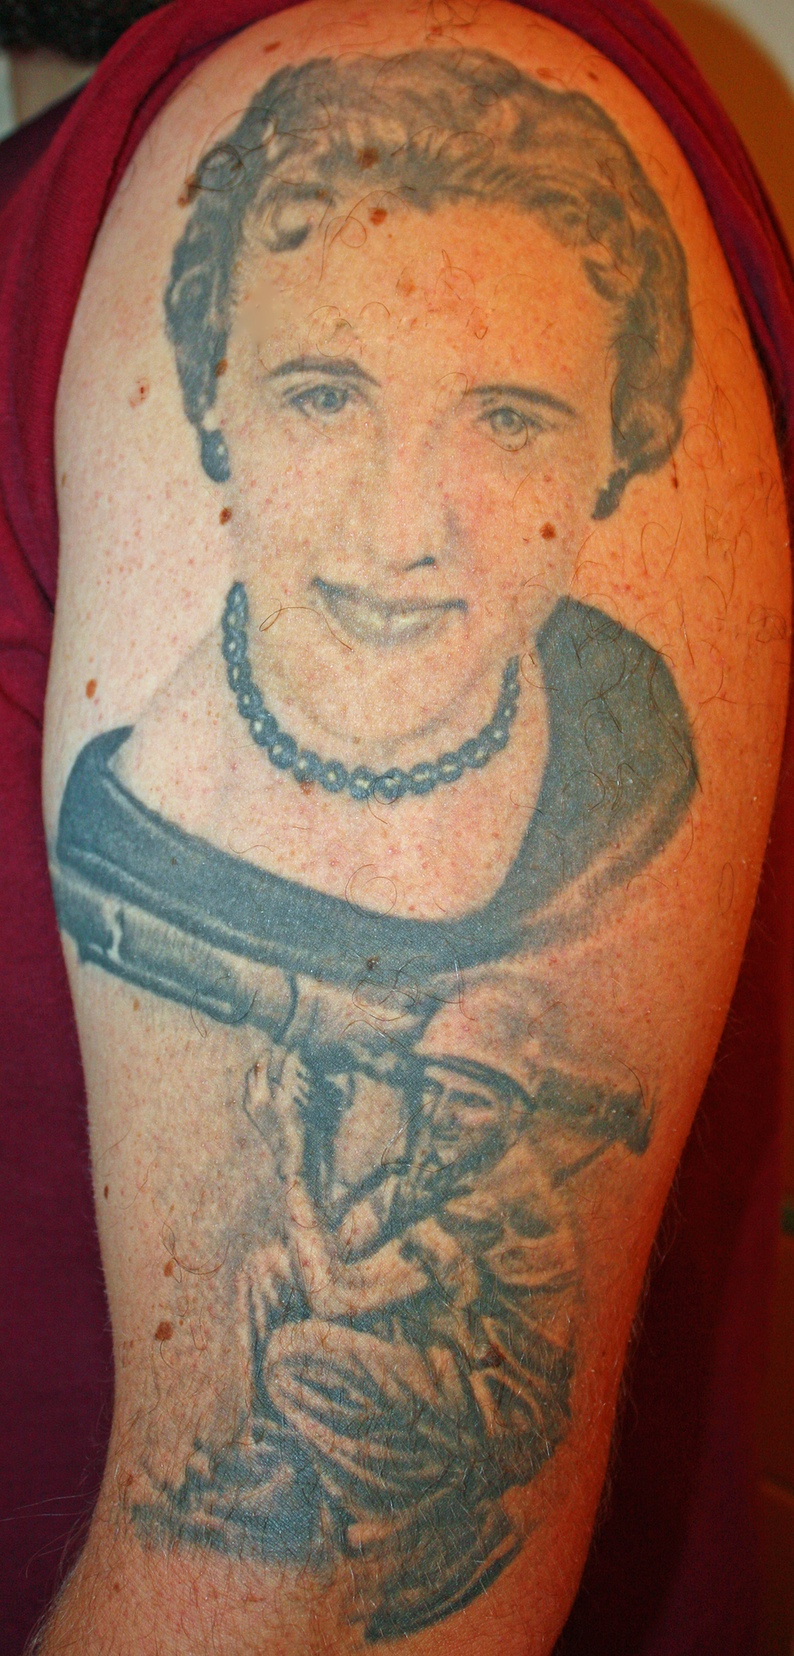 Tattoo pictured: Grandma and